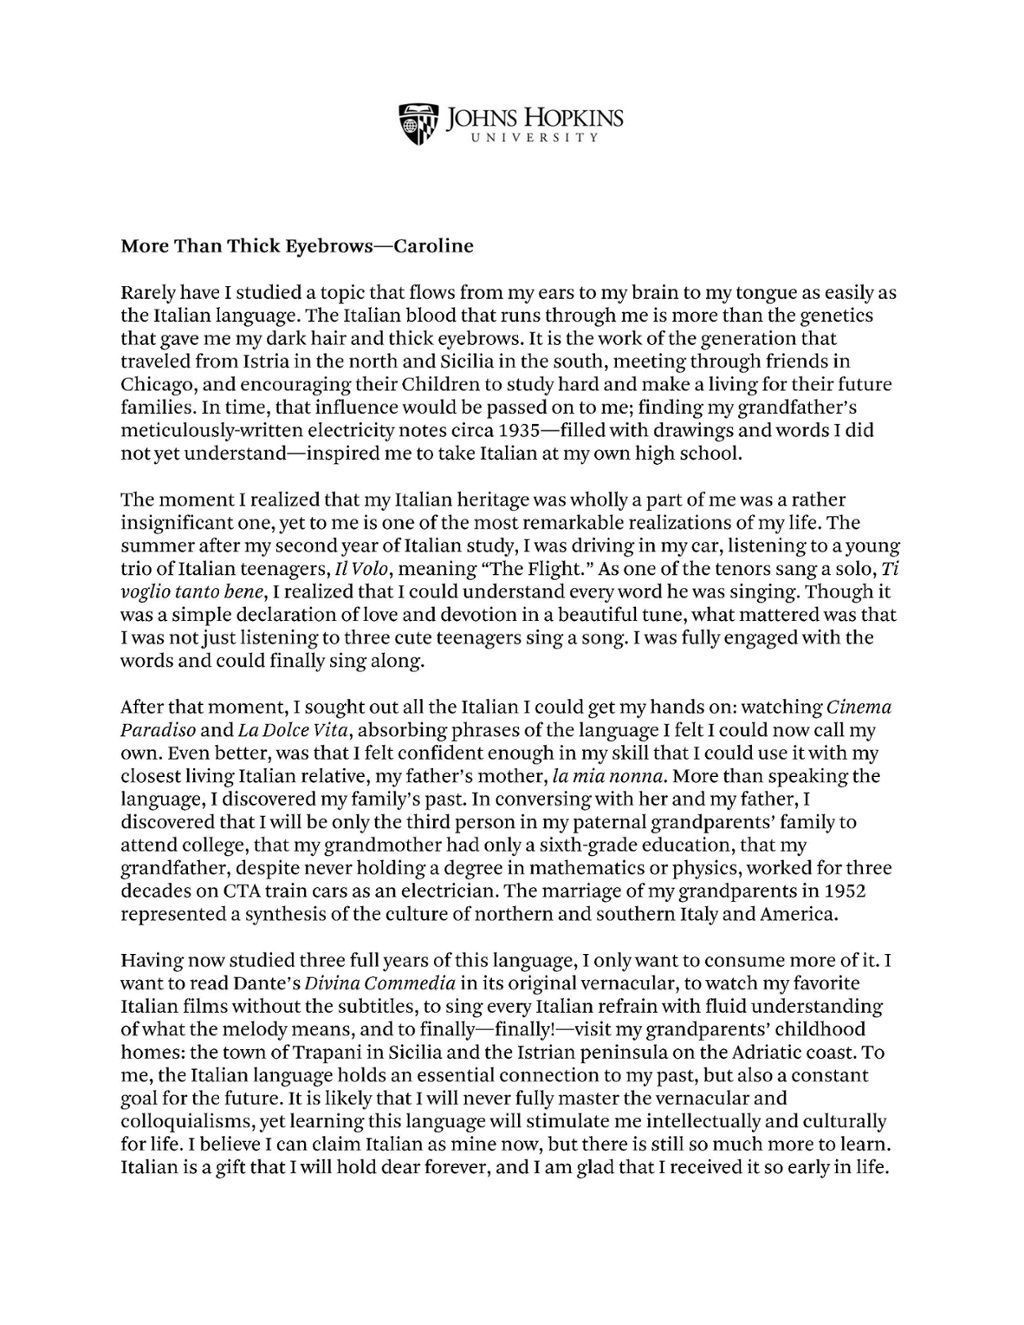 010 Rare College Application Essay Format Example Sample  Examples OutlineLarge